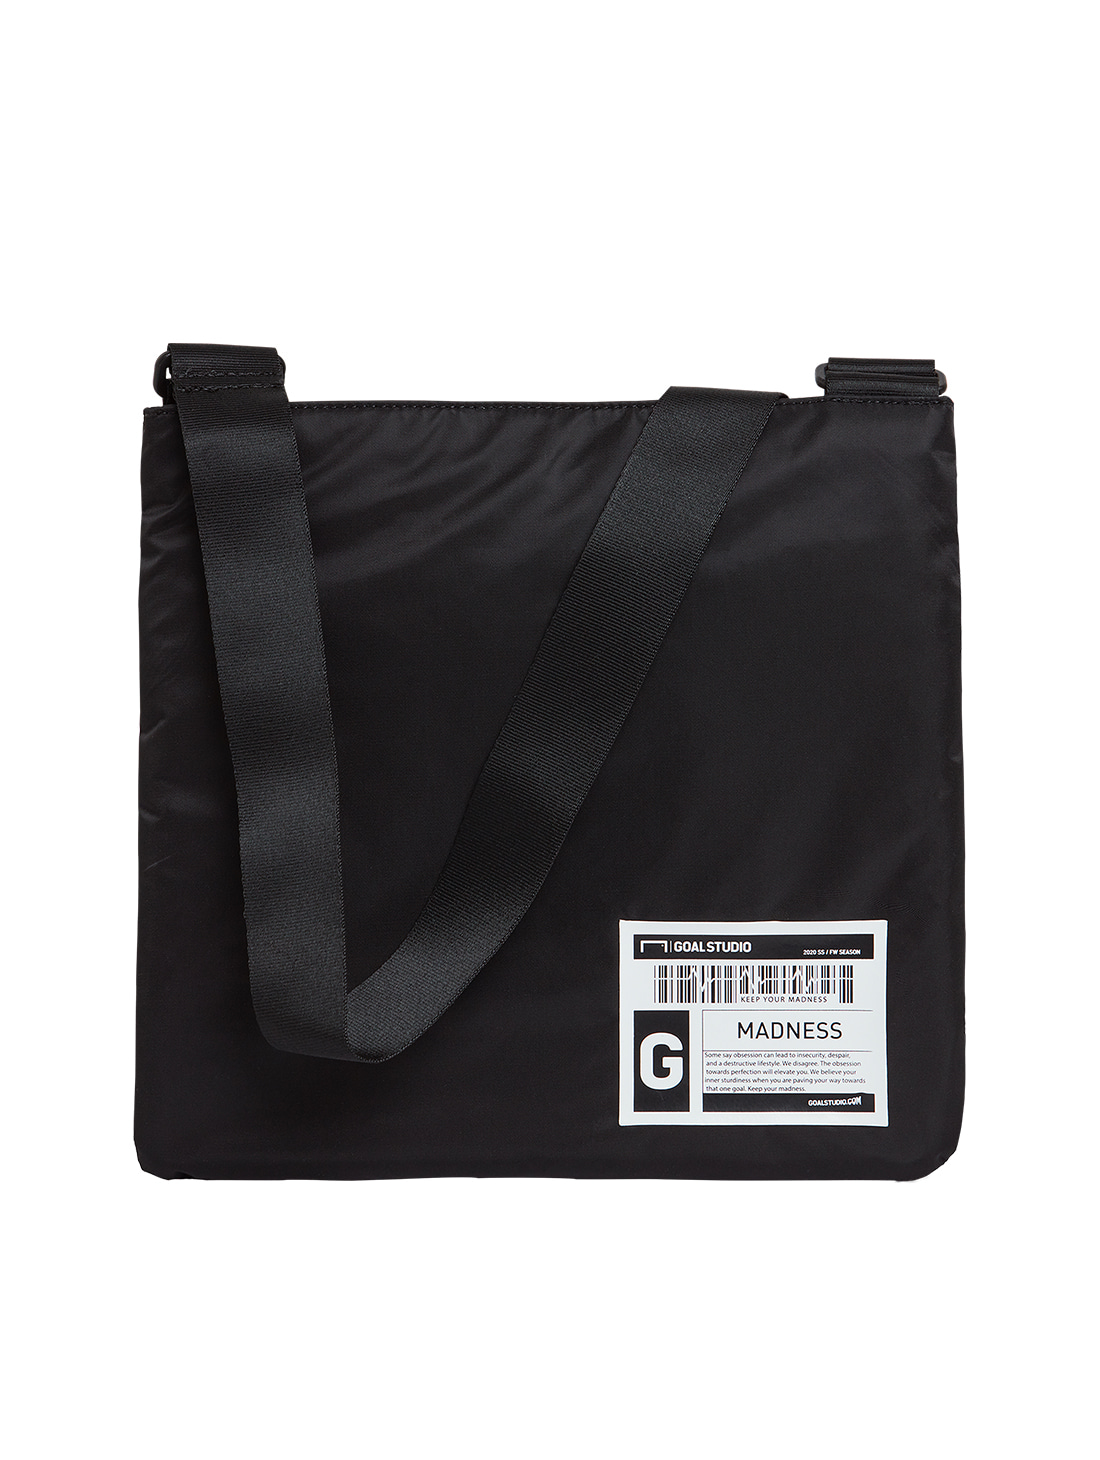 LOGO WAPPEN SACOCHE BAG - BLACK